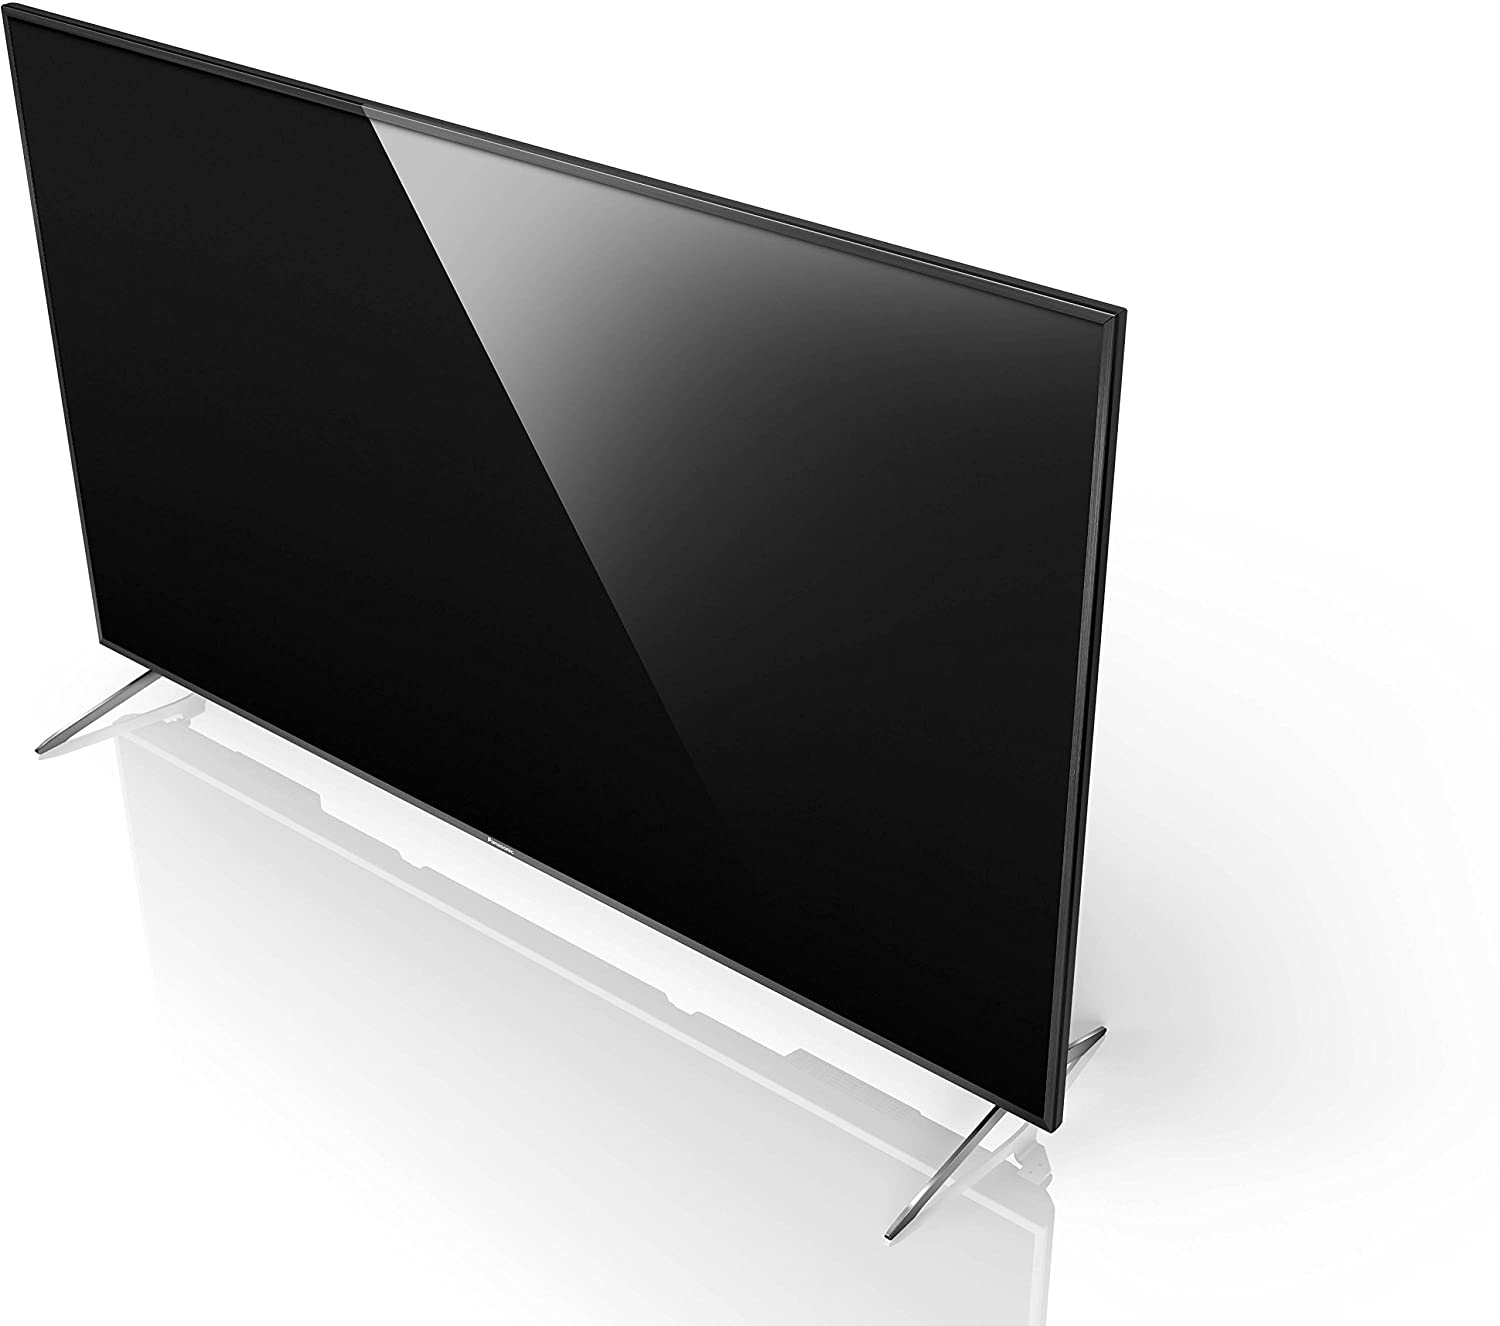 PANASONIC VIERA TX-55CXM715 TV WINDOWS 8 X64 TREIBER